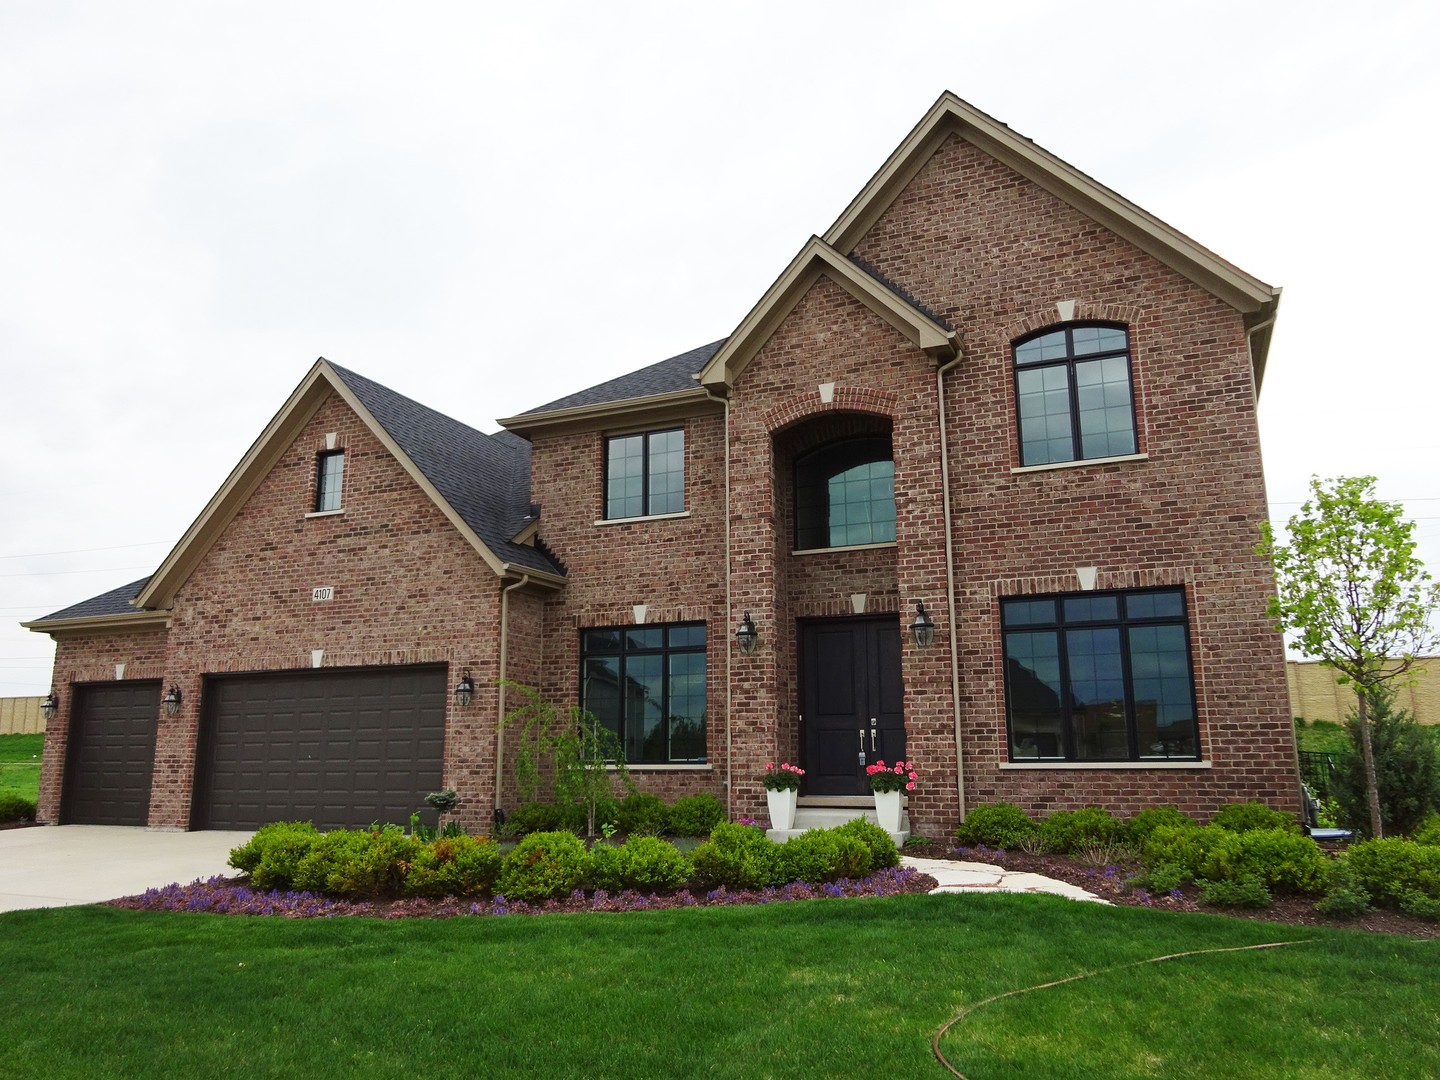 4107 Chinaberry Lane, Naperville, IL - USA (photo 1)